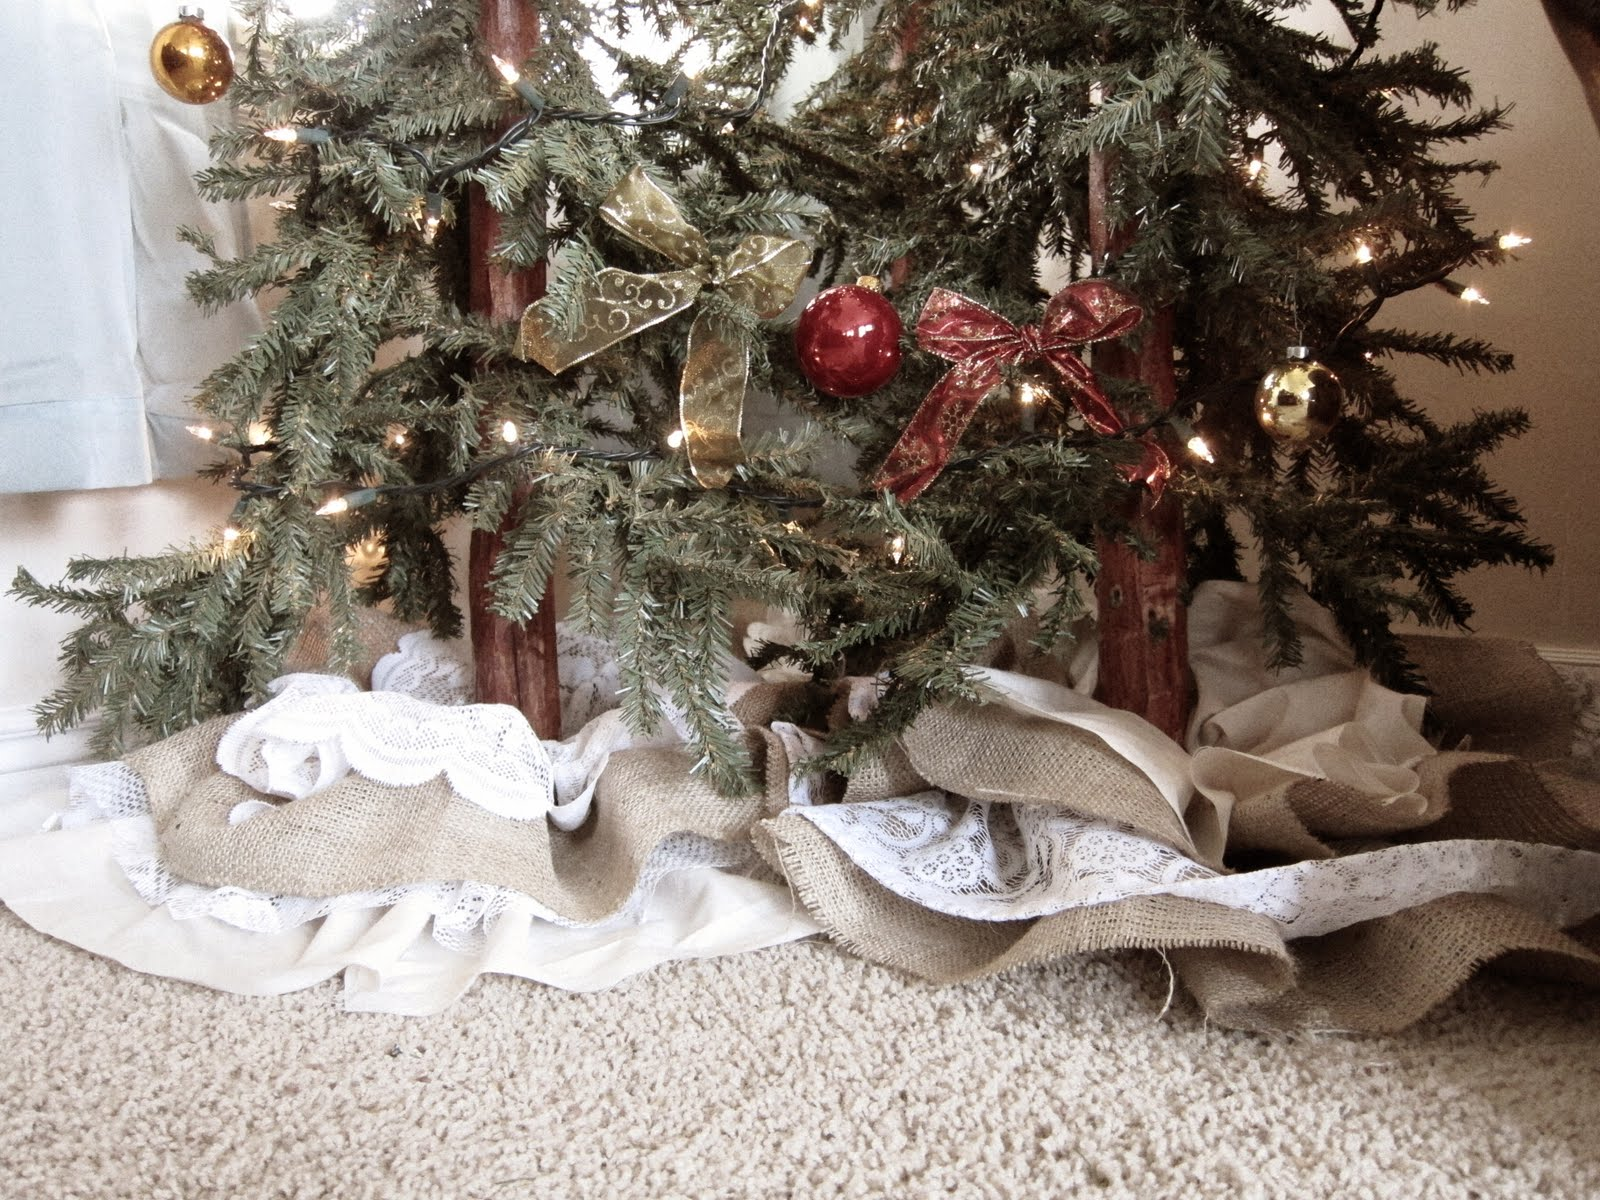 Do it yourself divas diy small christmas tree skirt diy small christmas tree skirt solutioingenieria Image collections